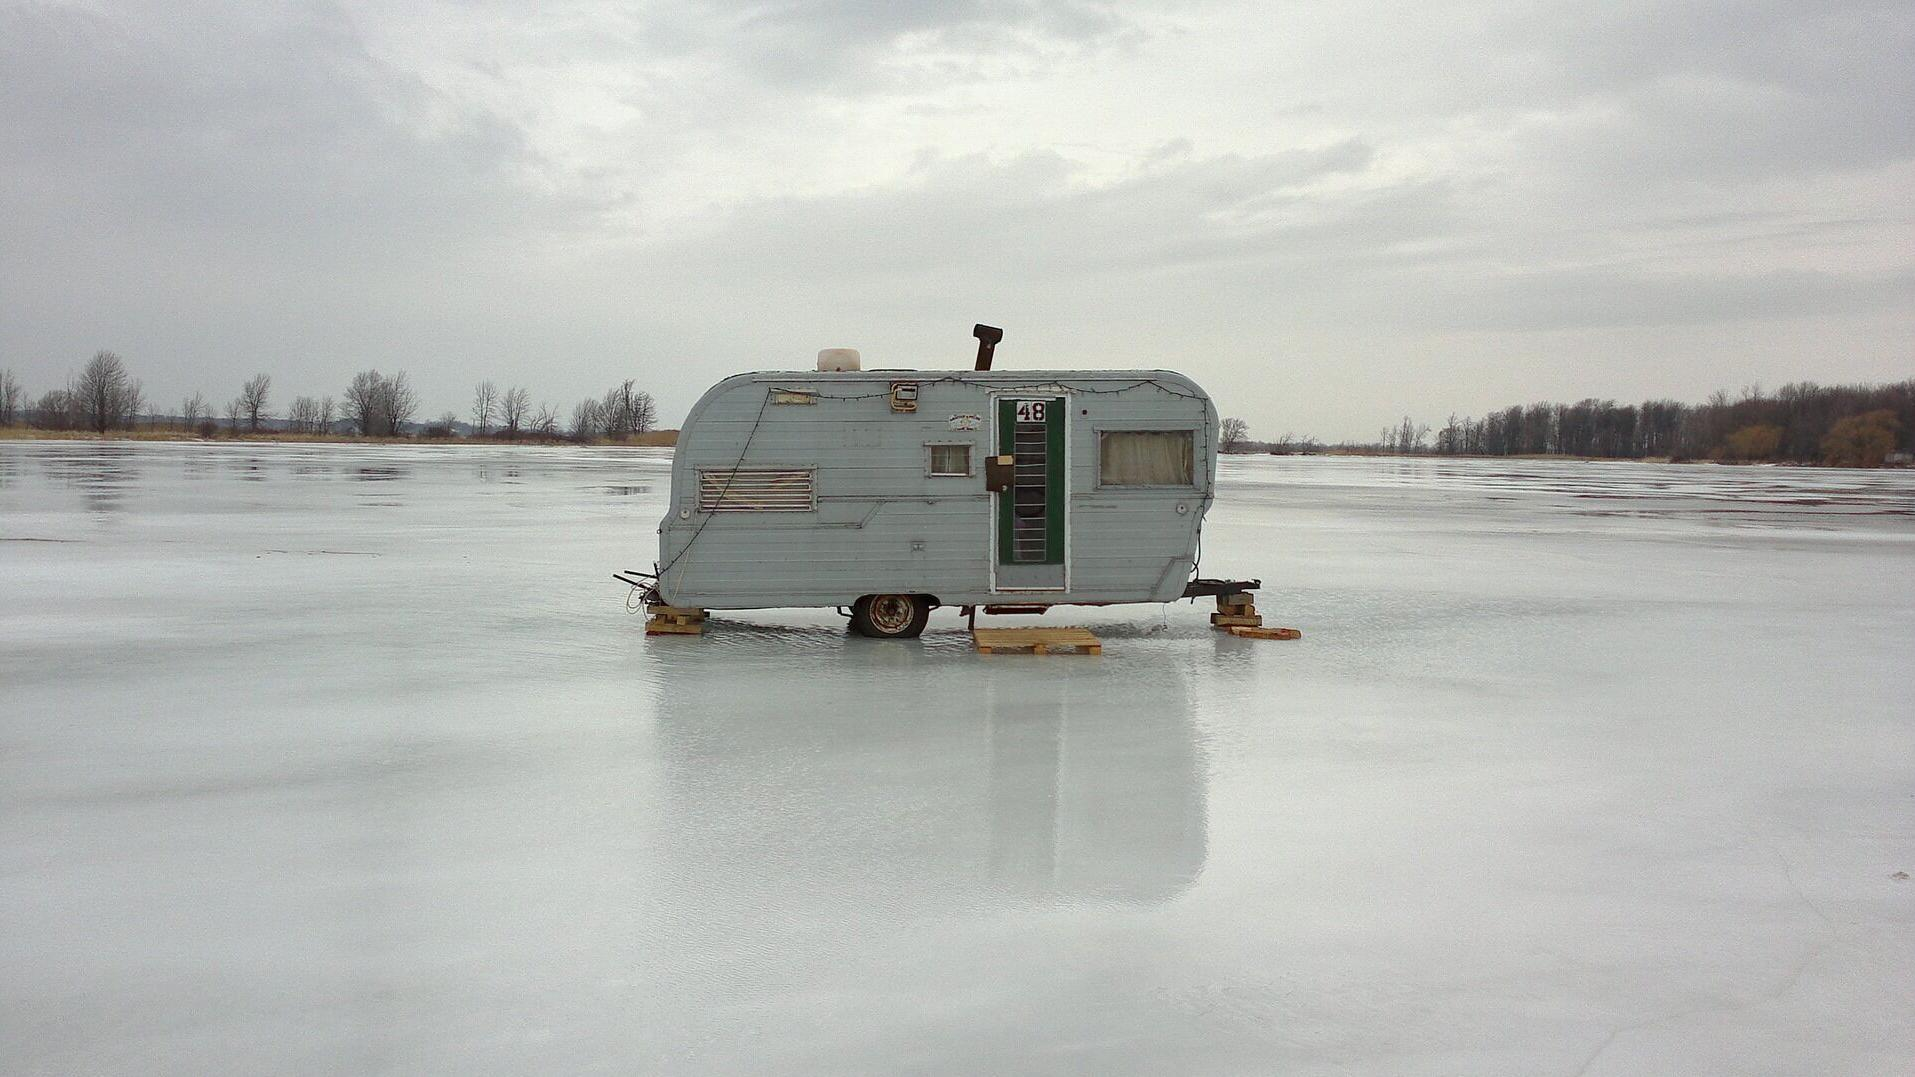 9 things to know about ice safety